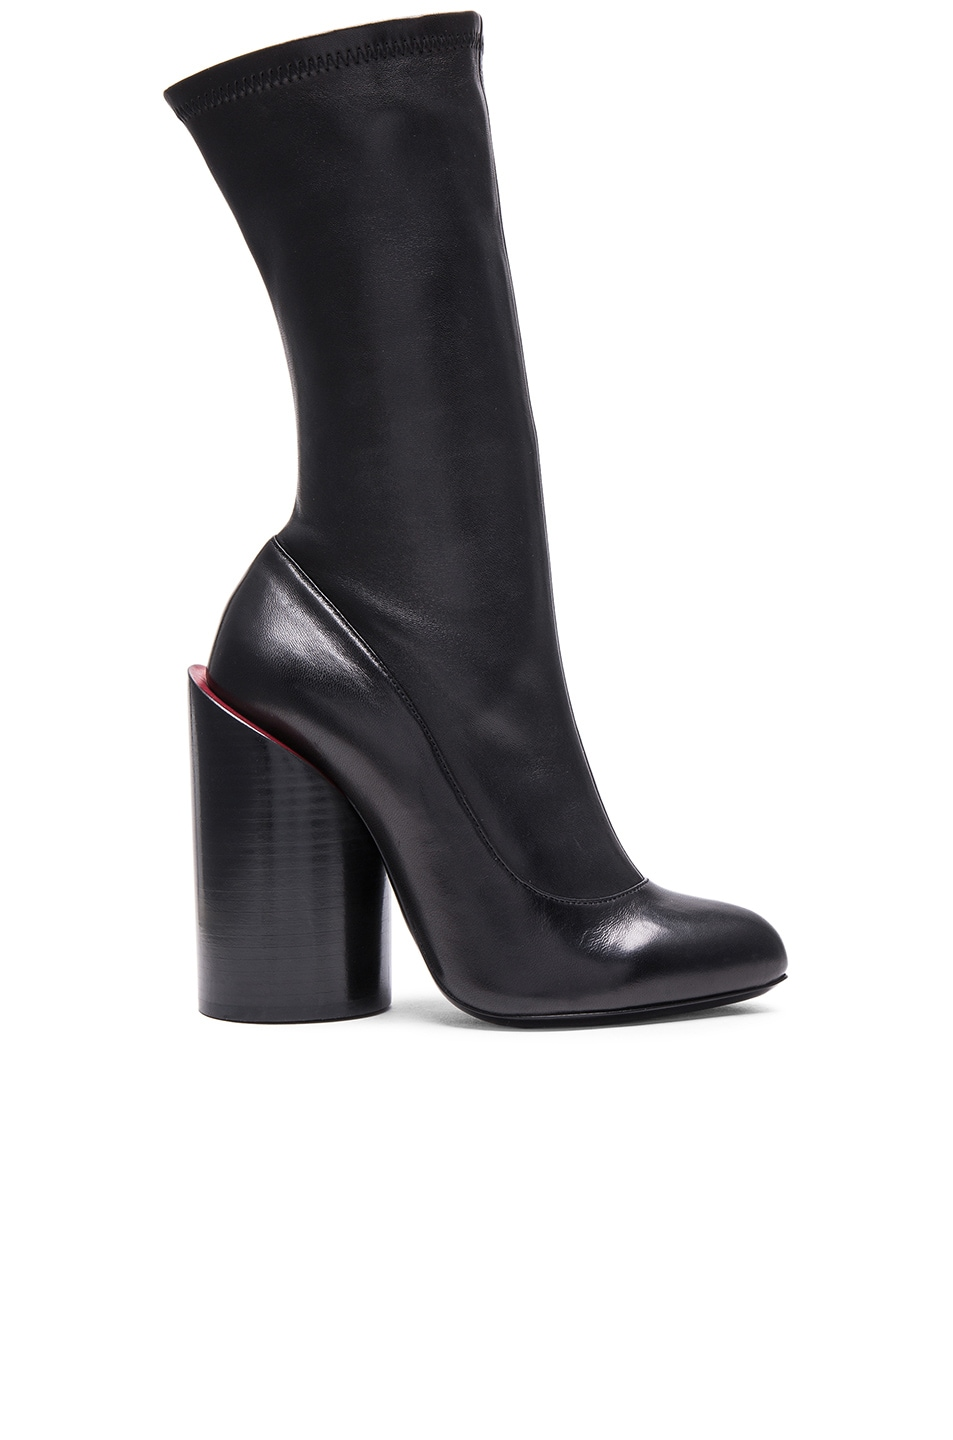 Givenchy Leather Boots lbeKs3W